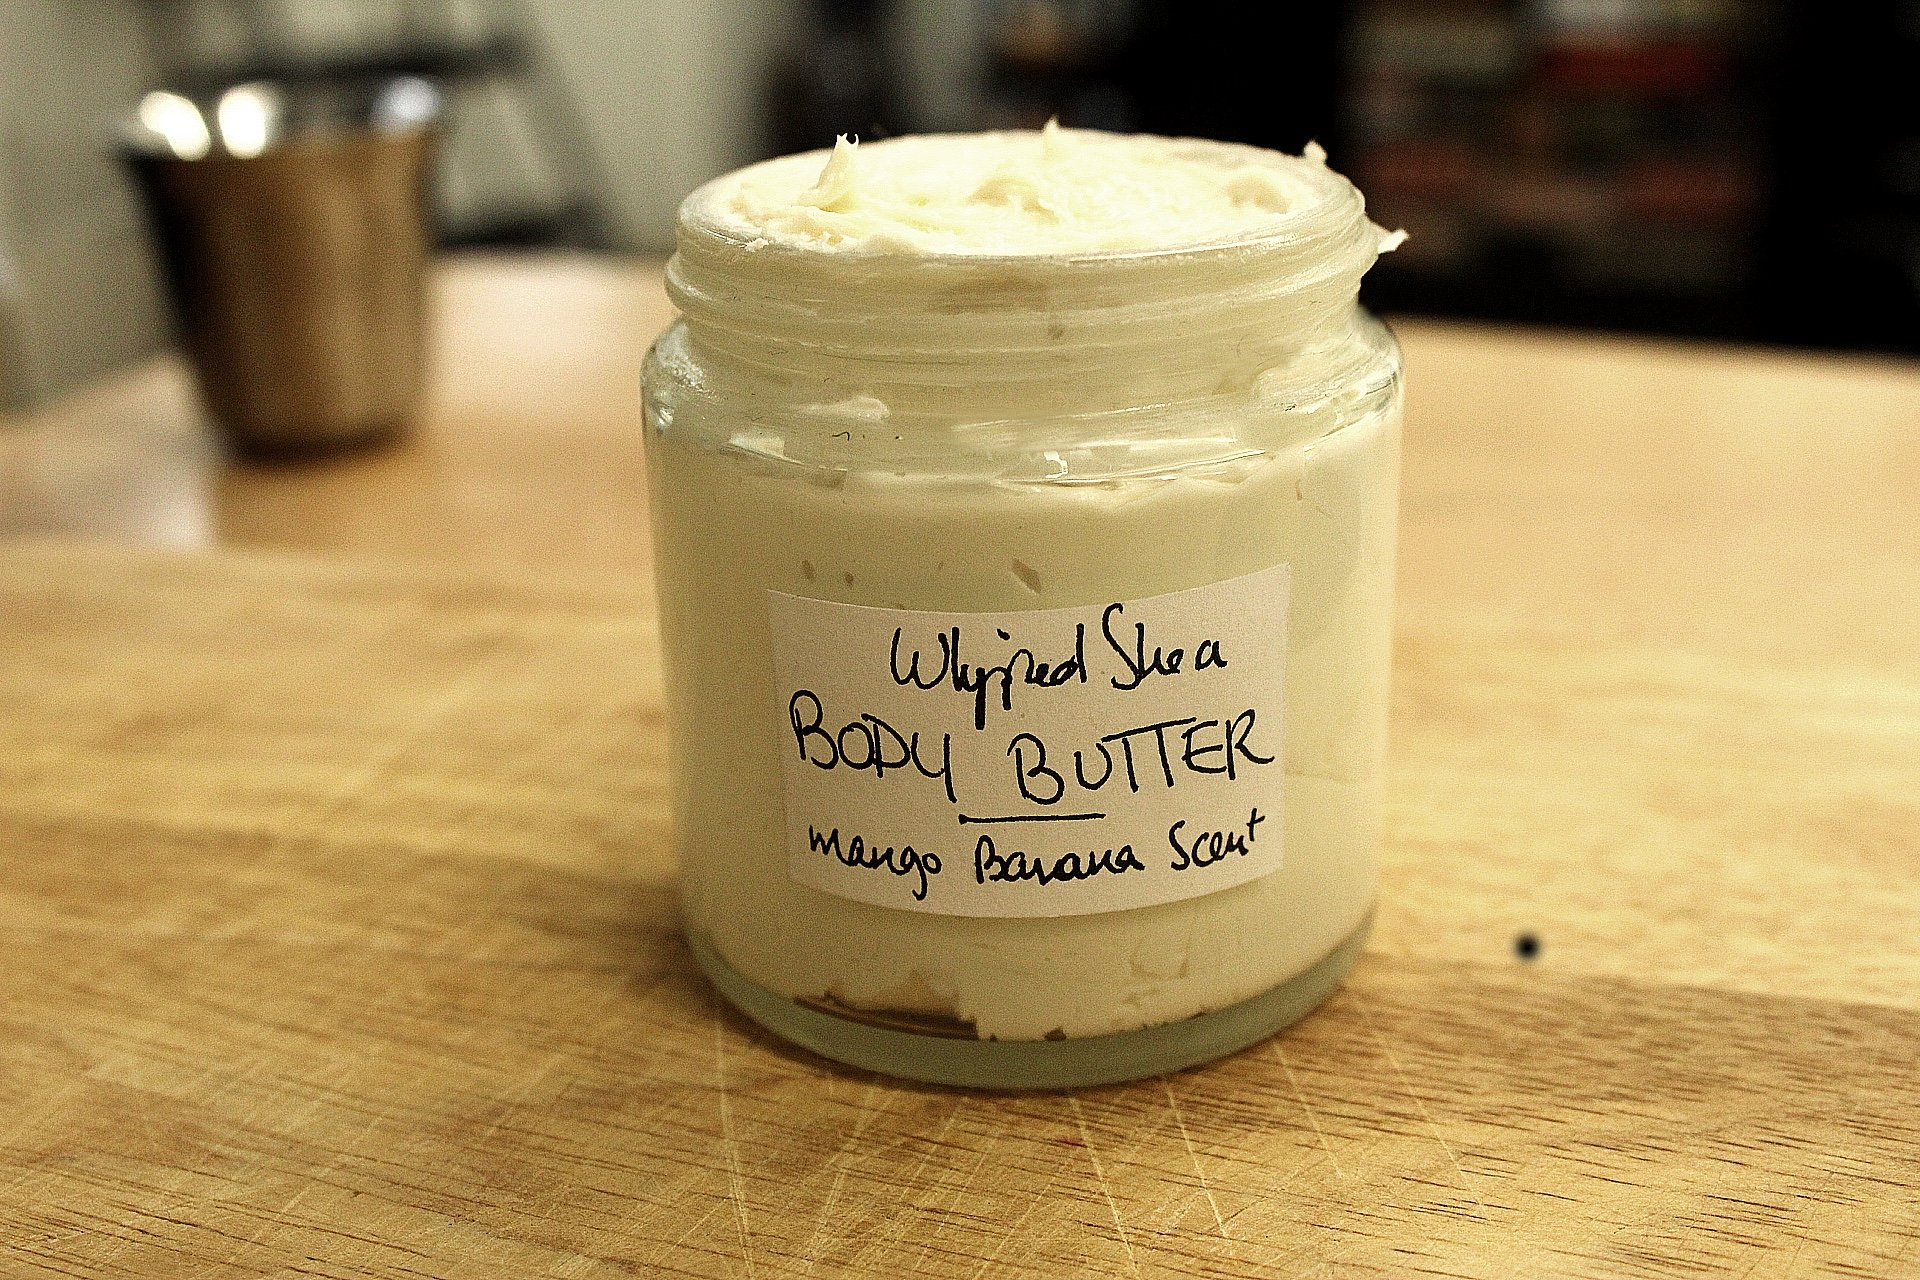 DIY Whipped Shea Body Butter